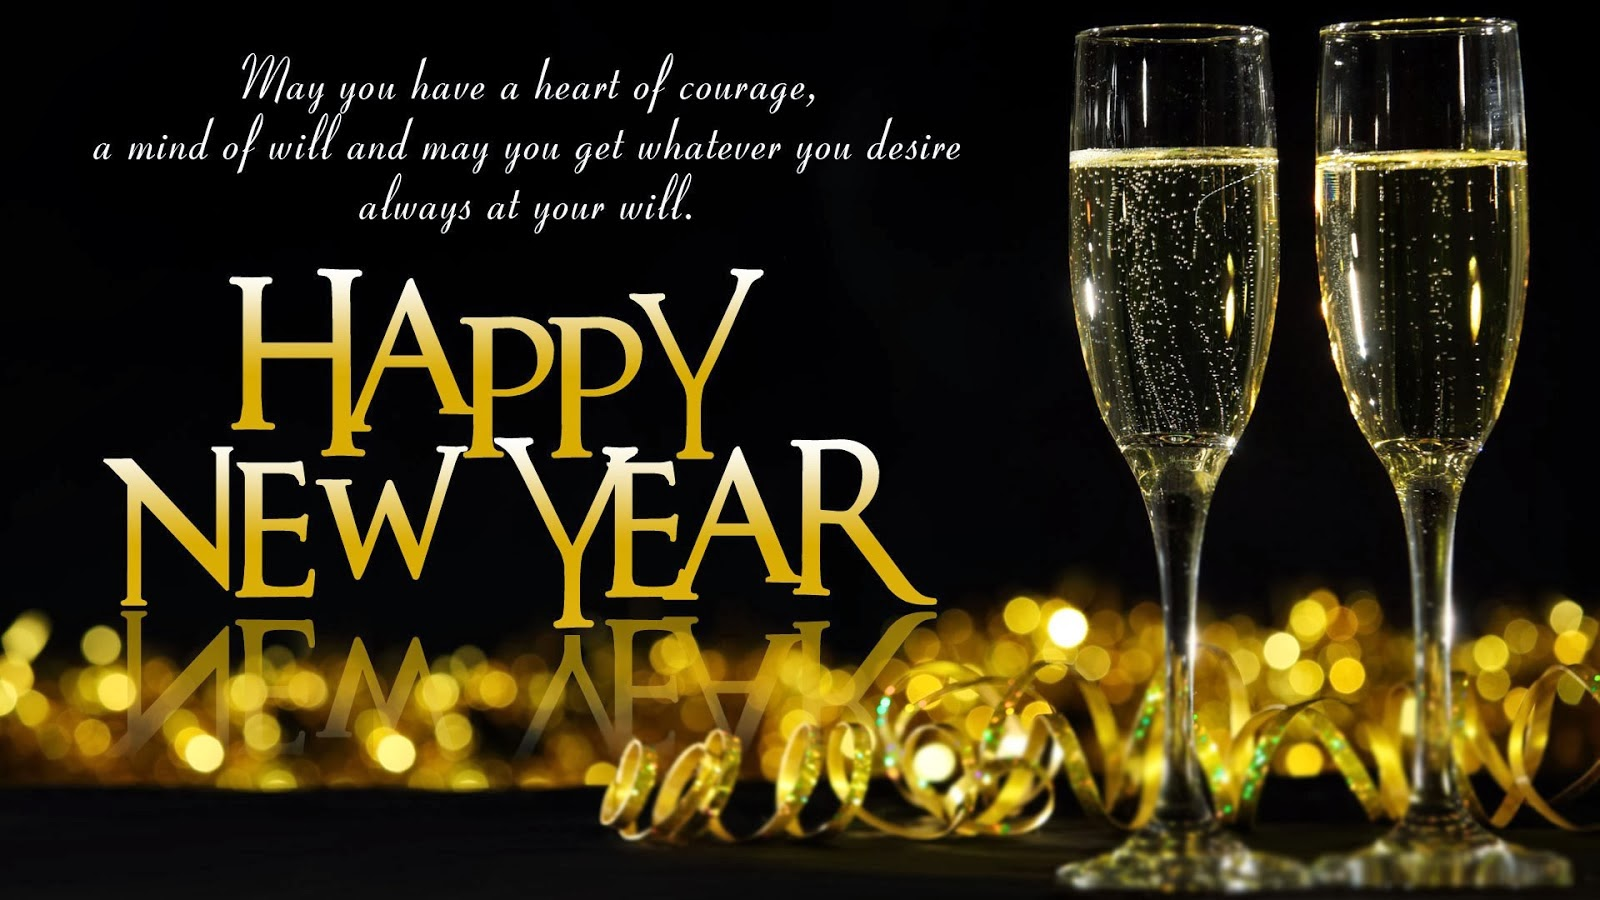 Merry chrismast and happy new year happy new year 2015 quotes in tamil happy new year 2015 quotes in tamil m4hsunfo